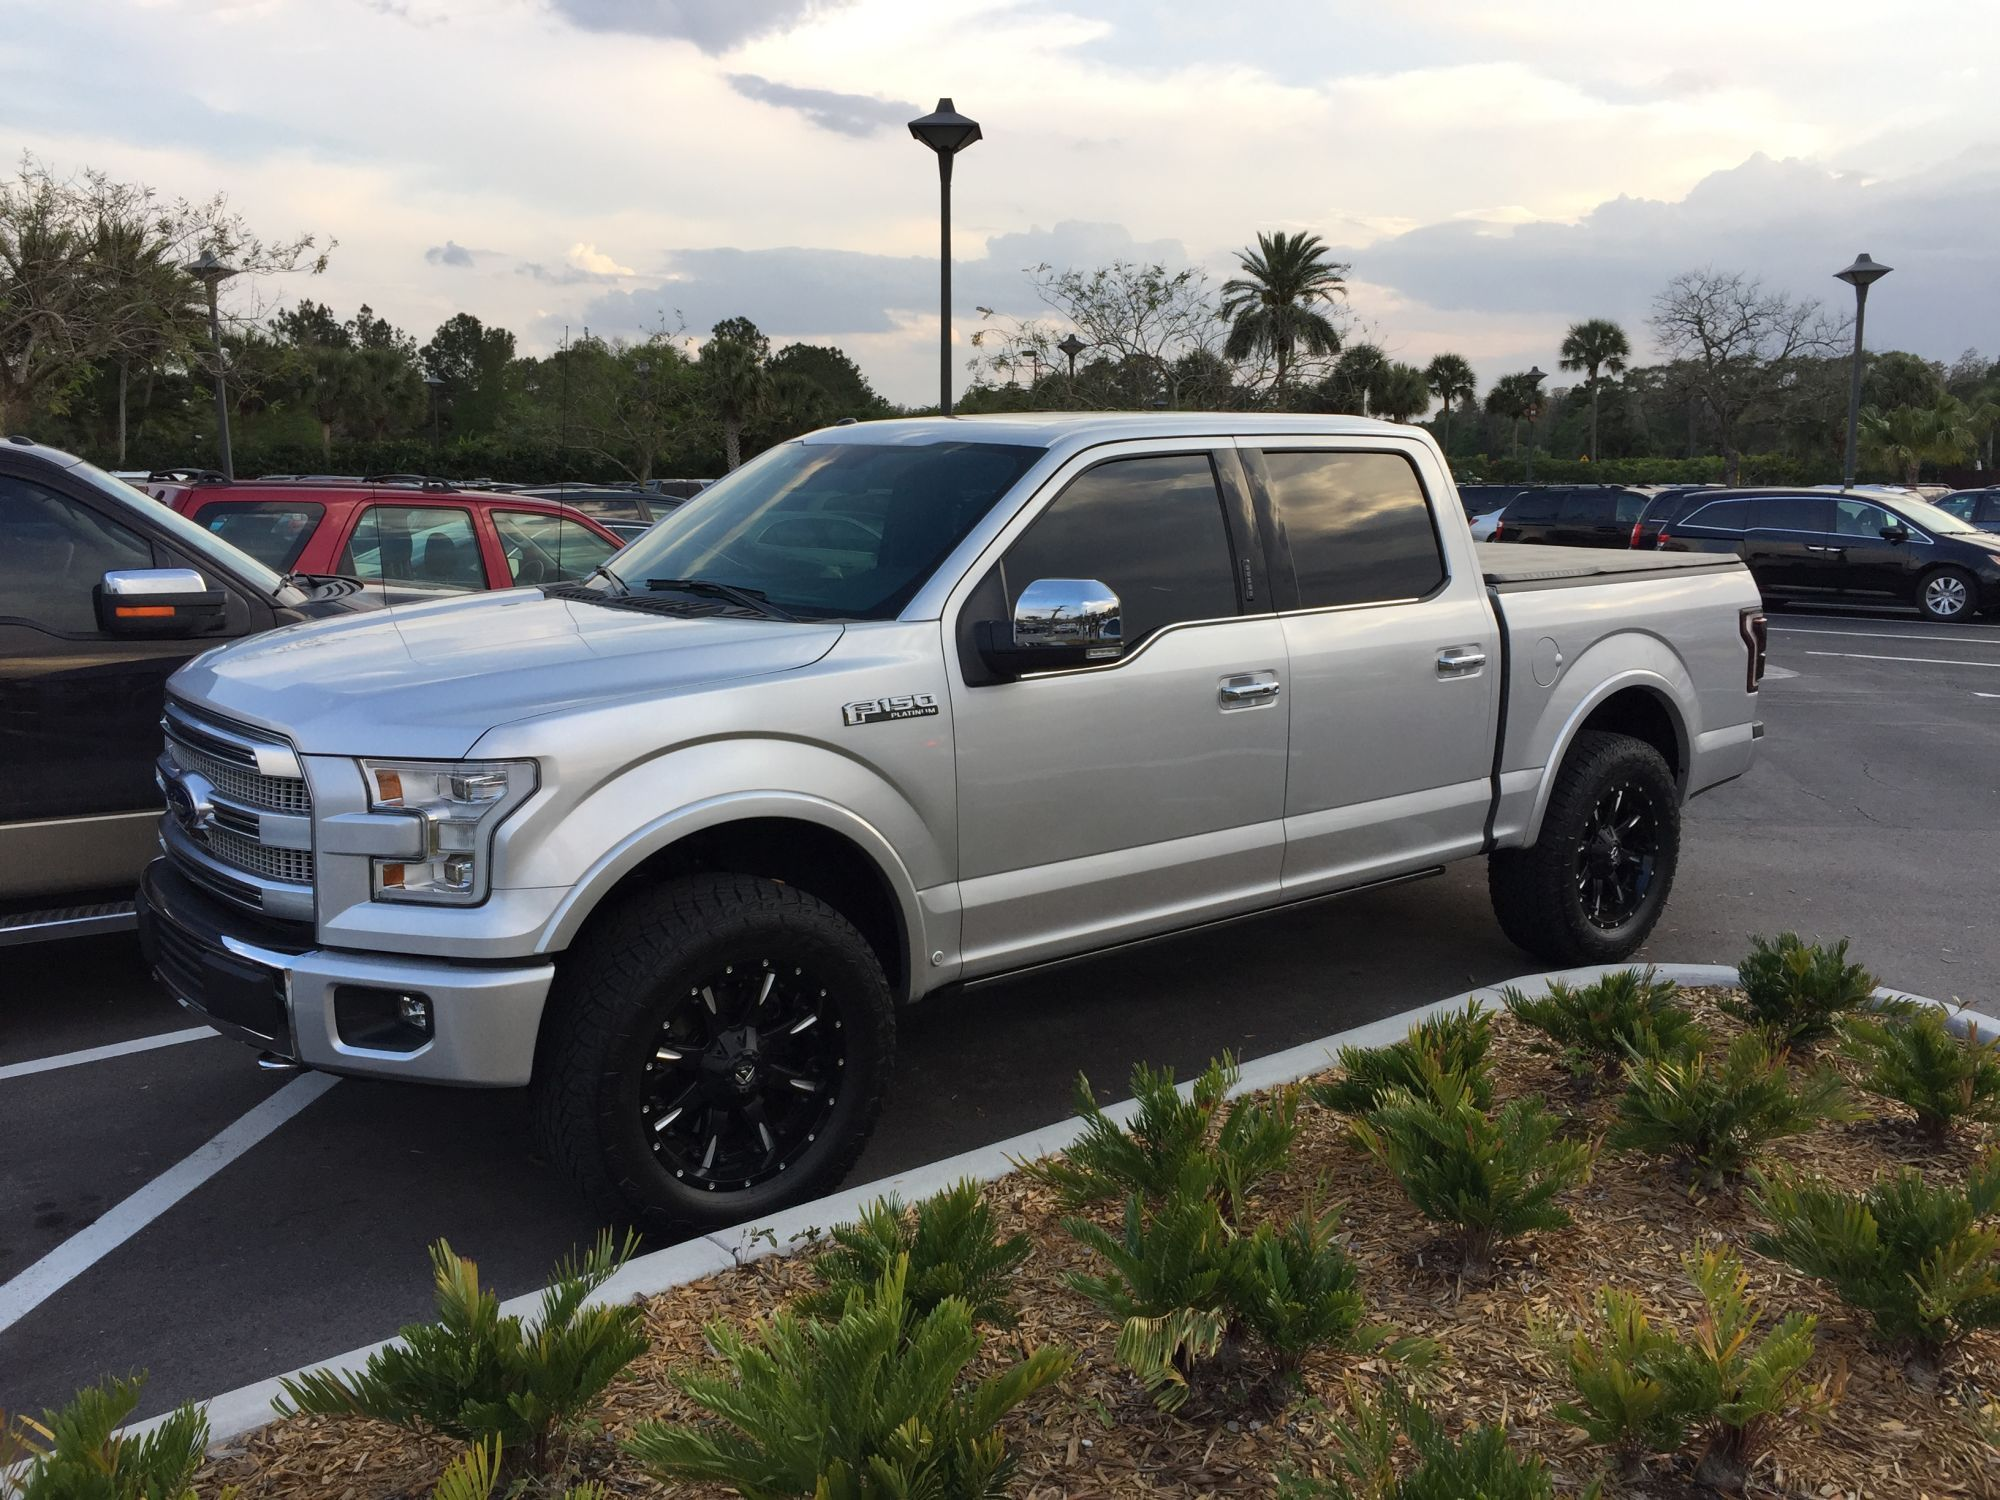 Rough Country Leveling Kit And Tire Ideas Ford F Forum Community Of Ford Truck Fans